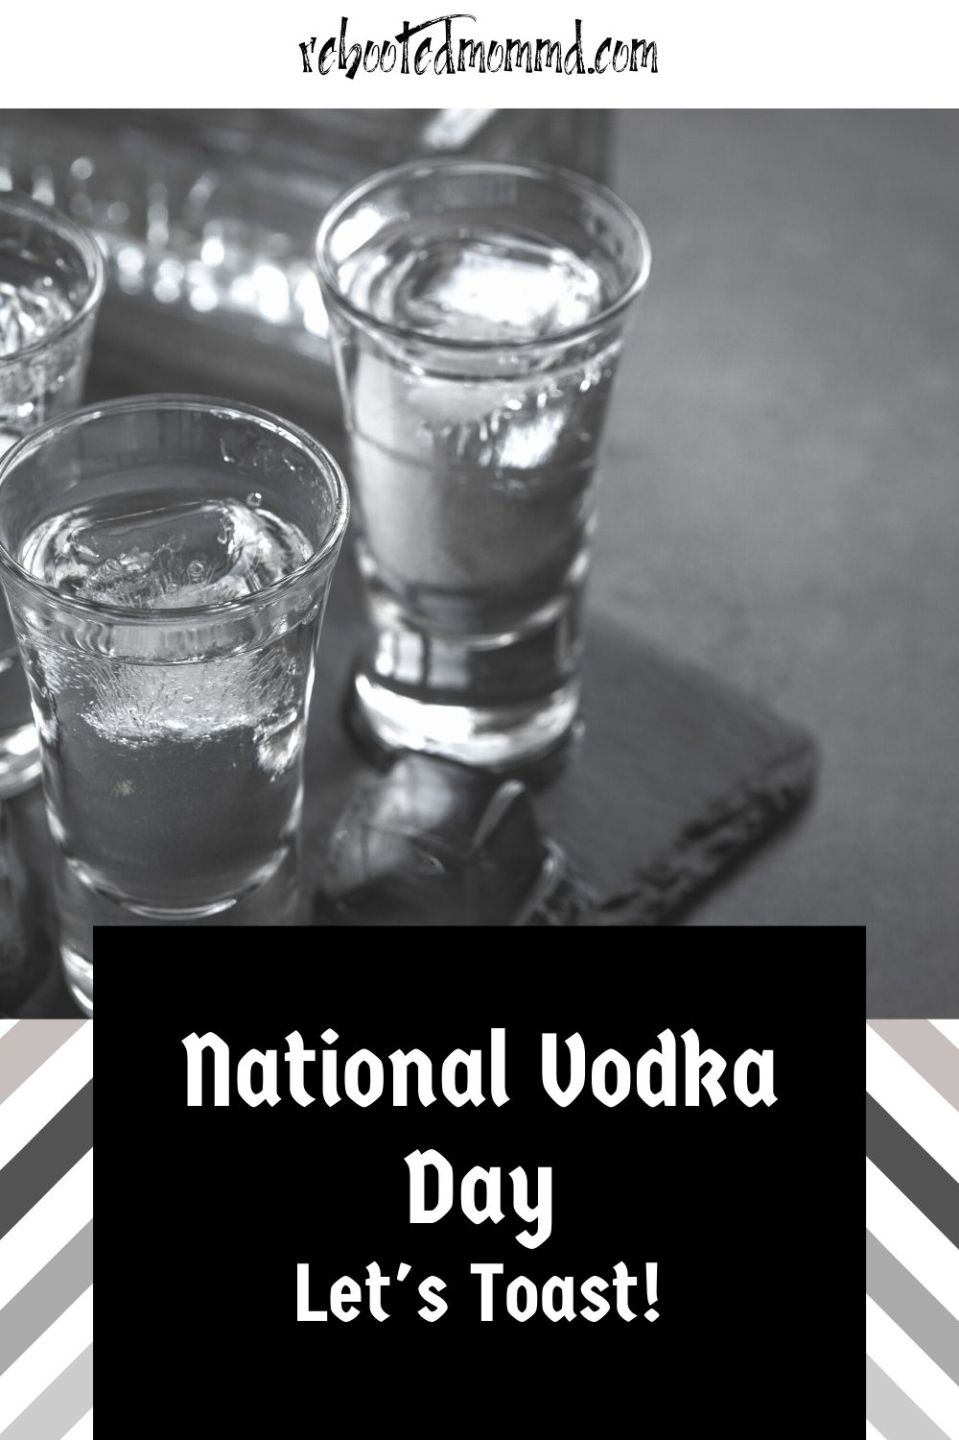 A Couple of Drinks for National Vodka Day